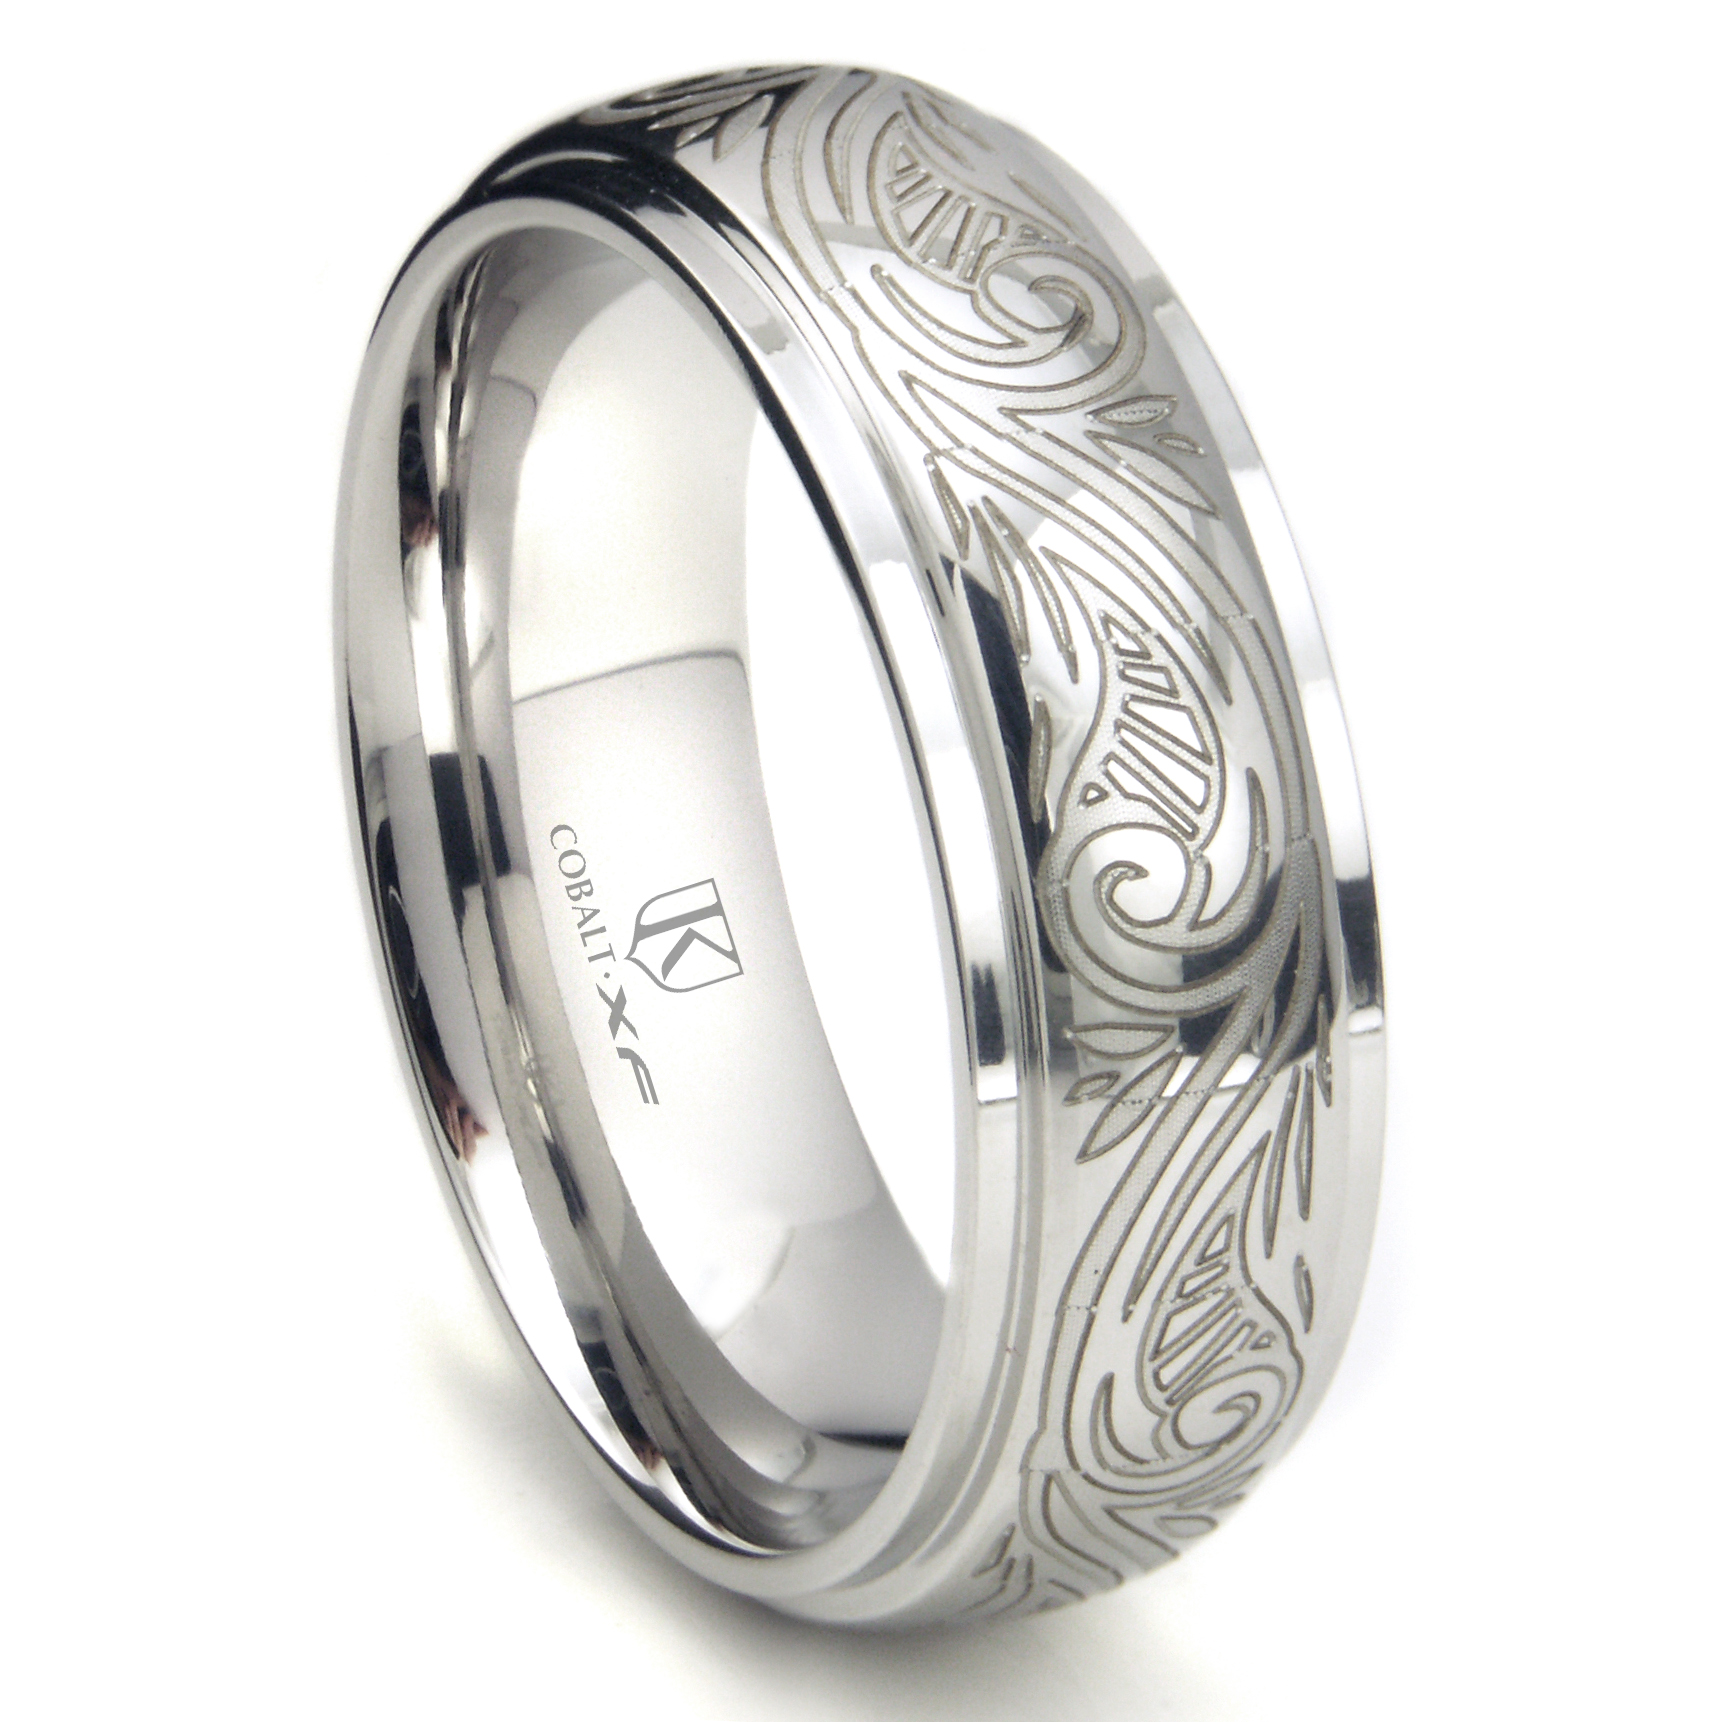 flat silver bands band jewelry sterling ring wedding engraved sstr bling unisex